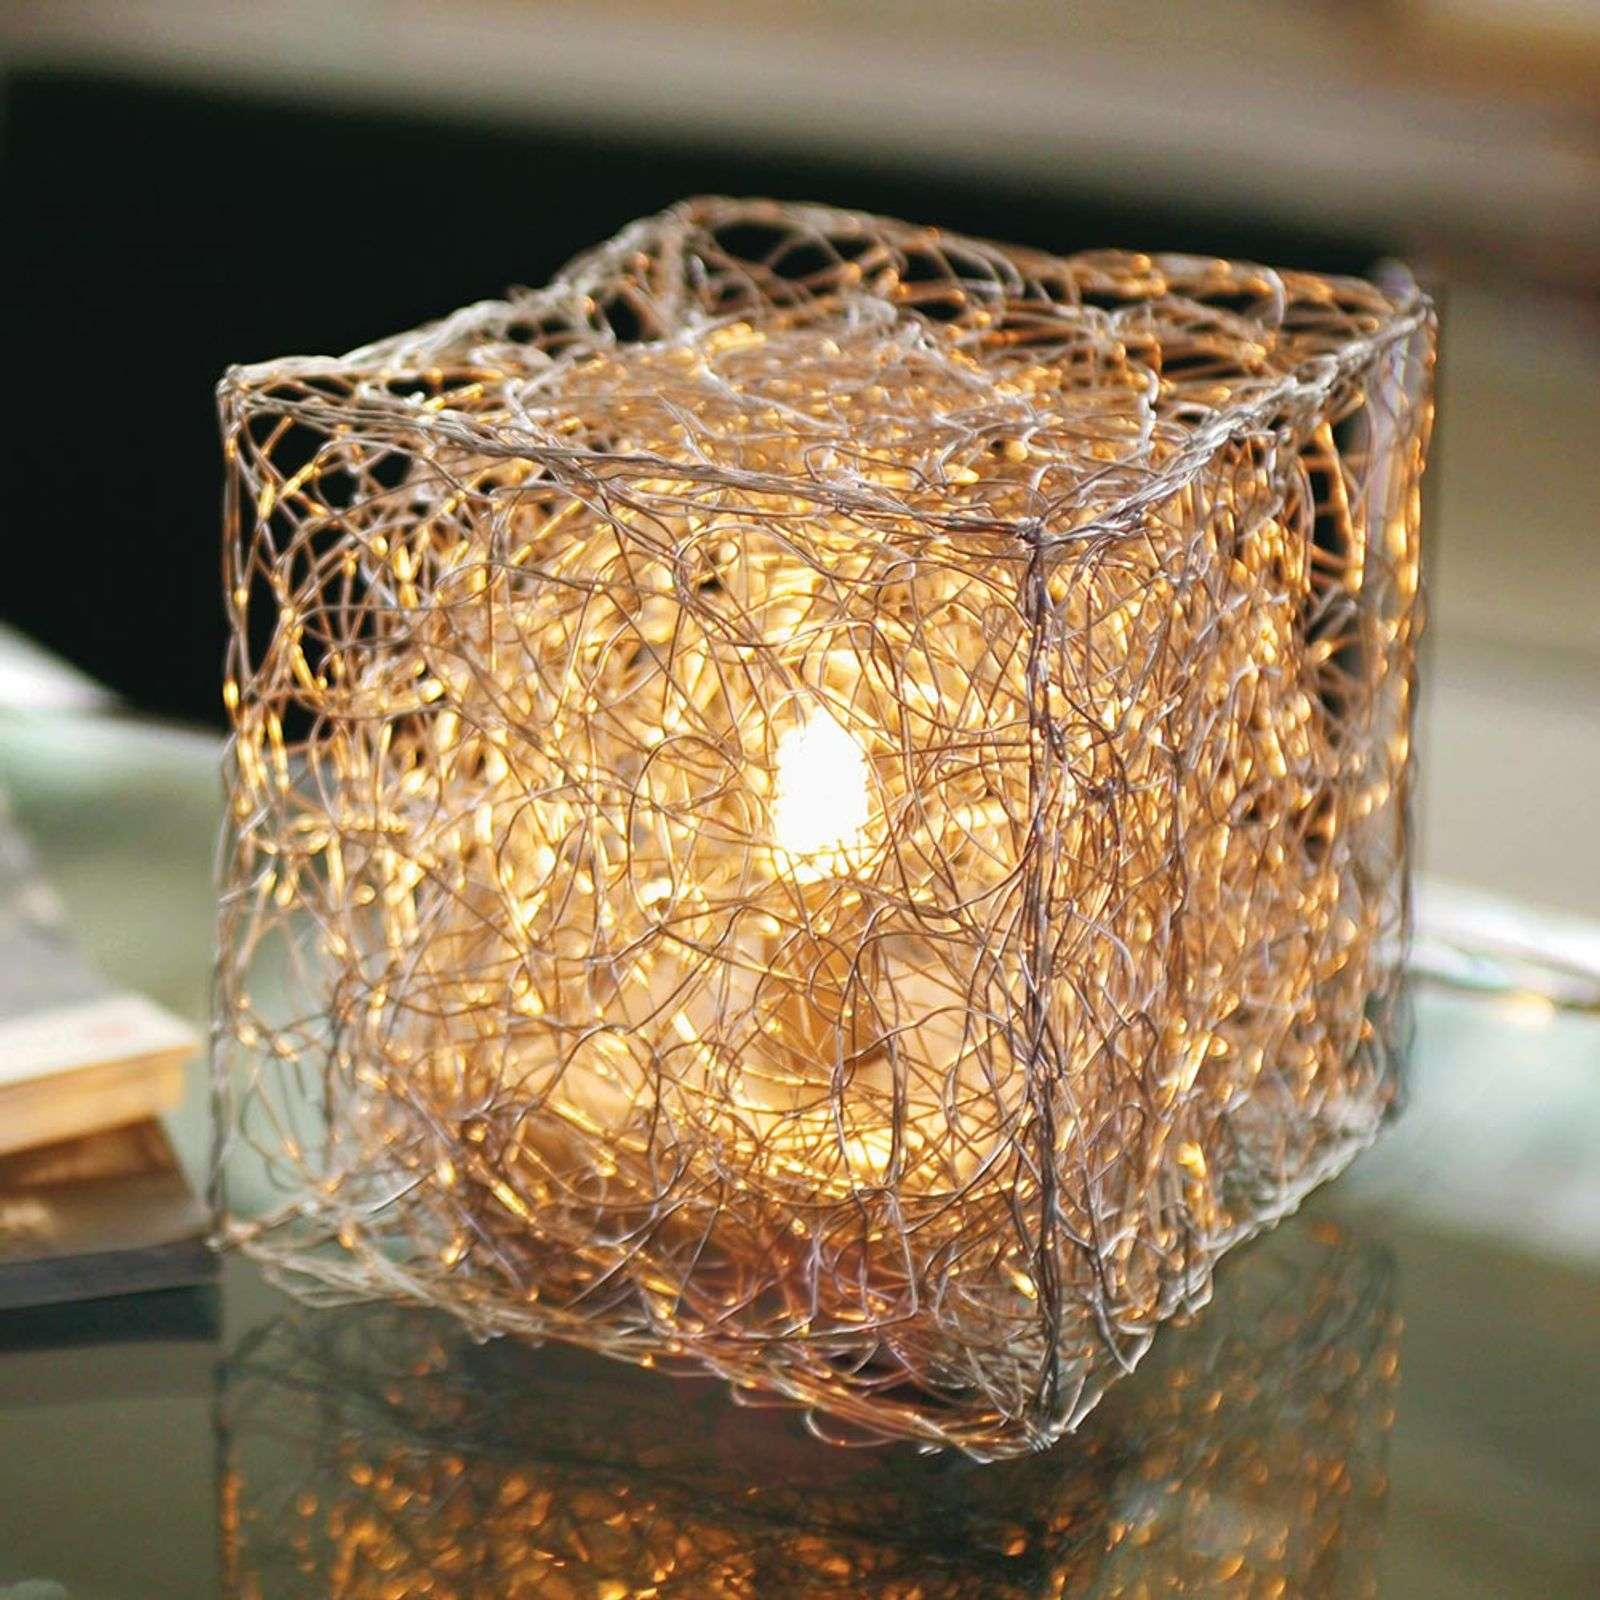 Cube-shaped table lamp Qubetto-5538040-01